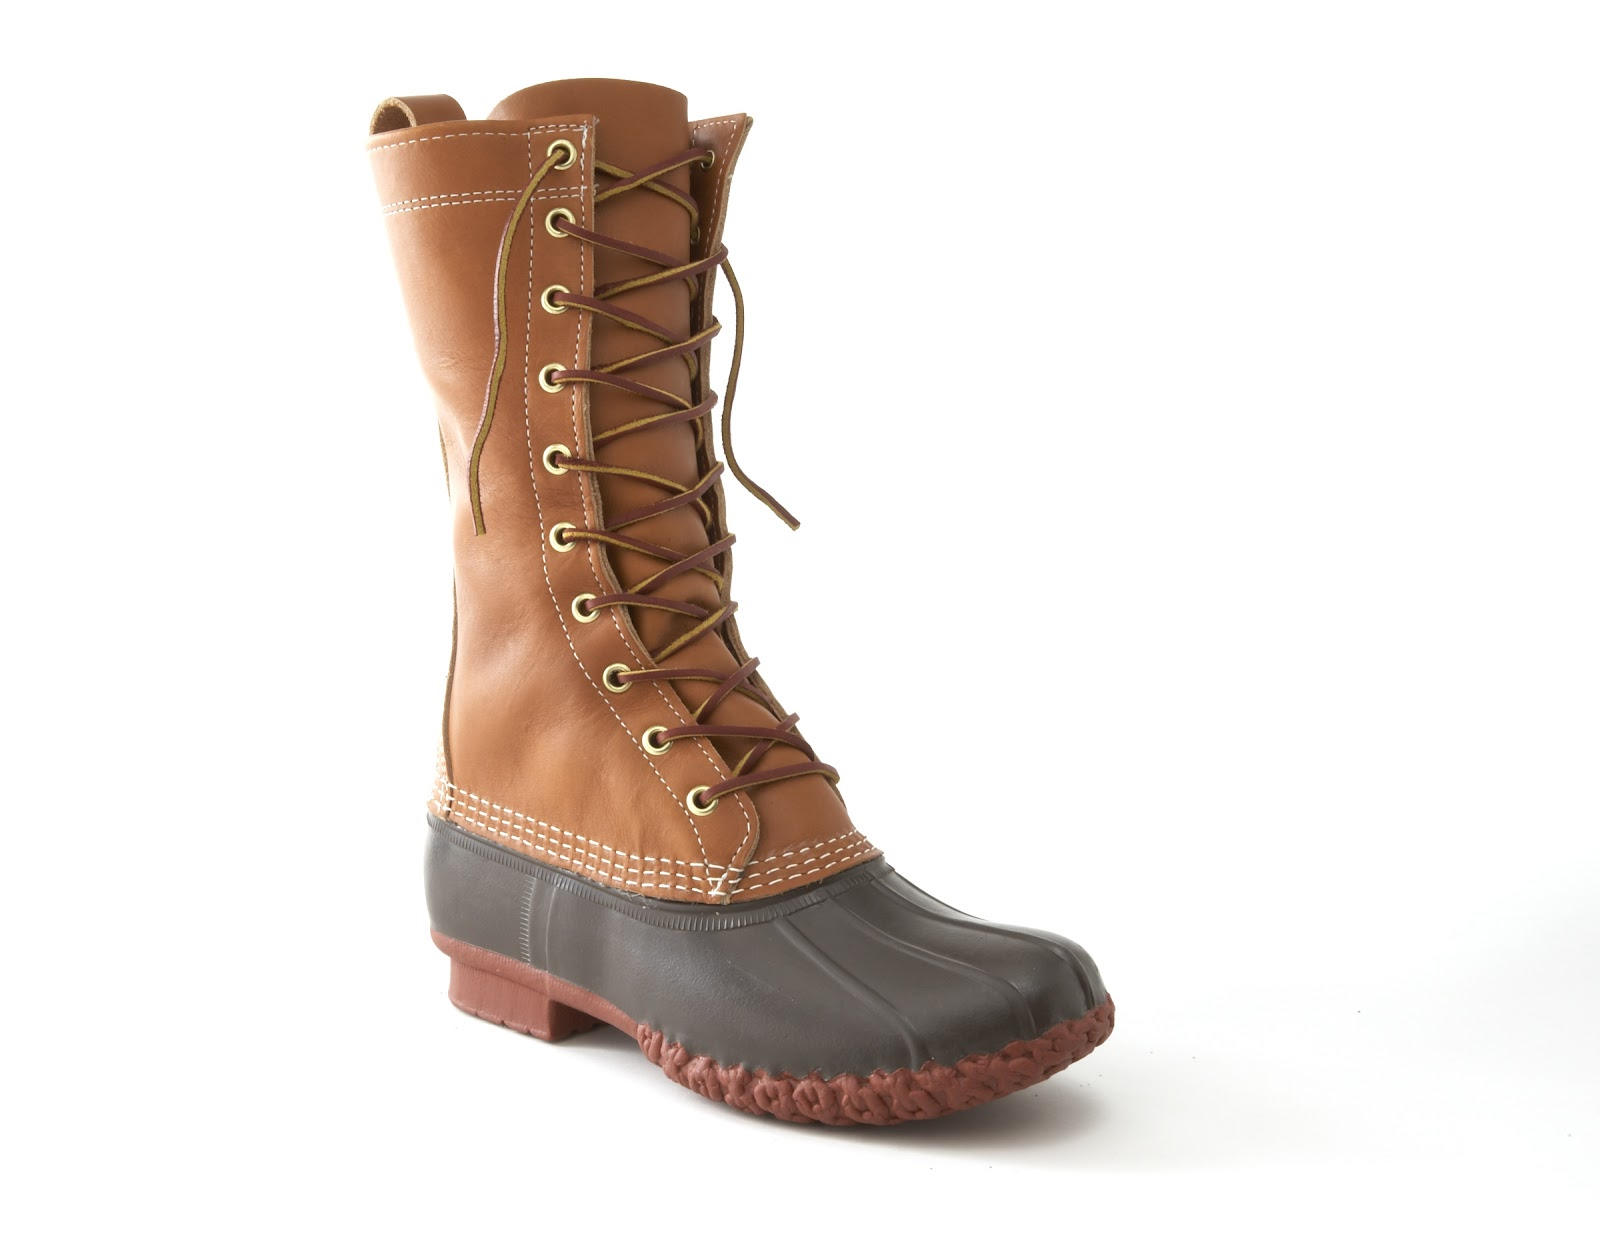 Image result for ll bean maine boot